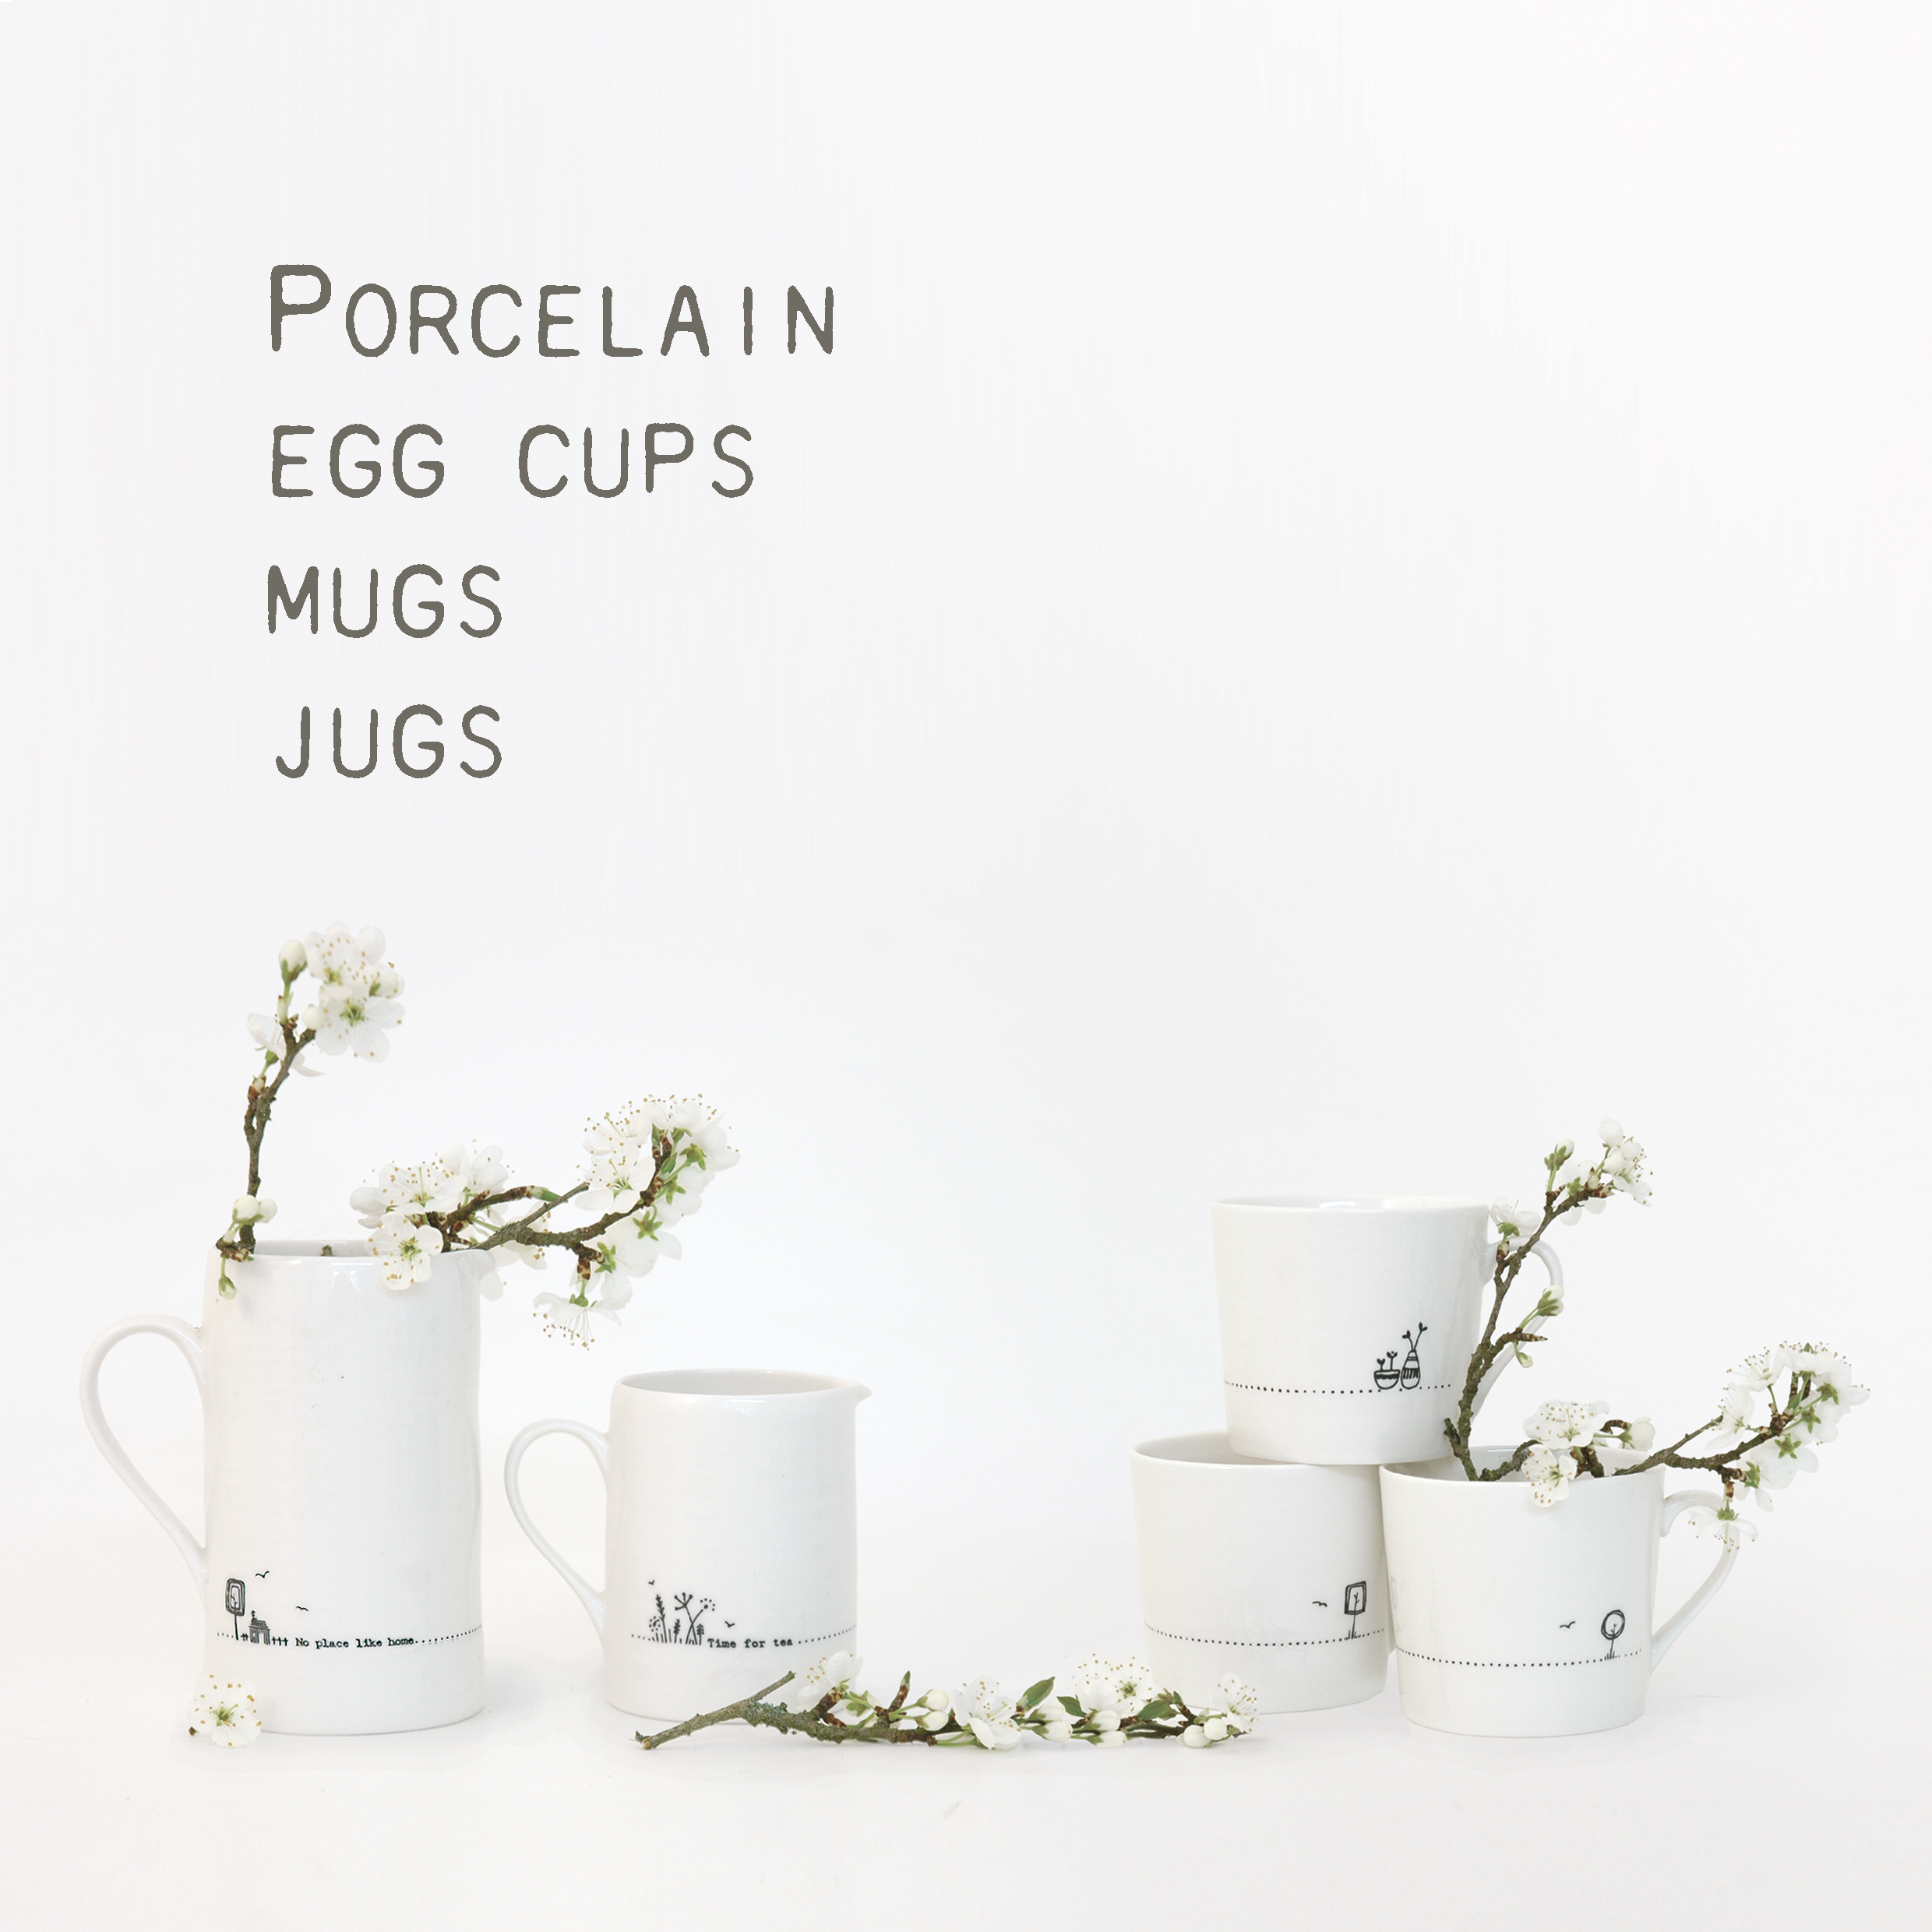 Mugs, Jugs & Egg cups